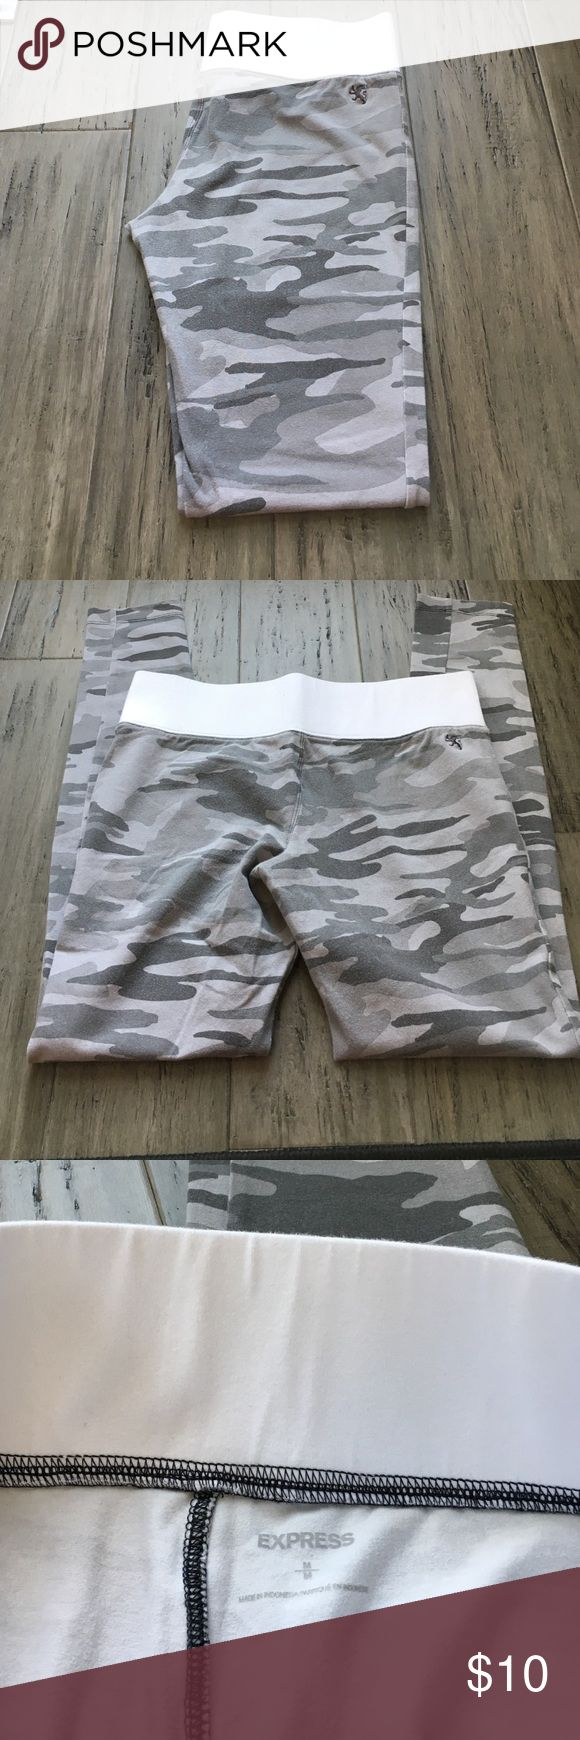 Express Grey Camo Yoga Pant Express Yoga Pant in Grey Camo. They've been washed a few times and are a little bit faded. Express Pants Leggings